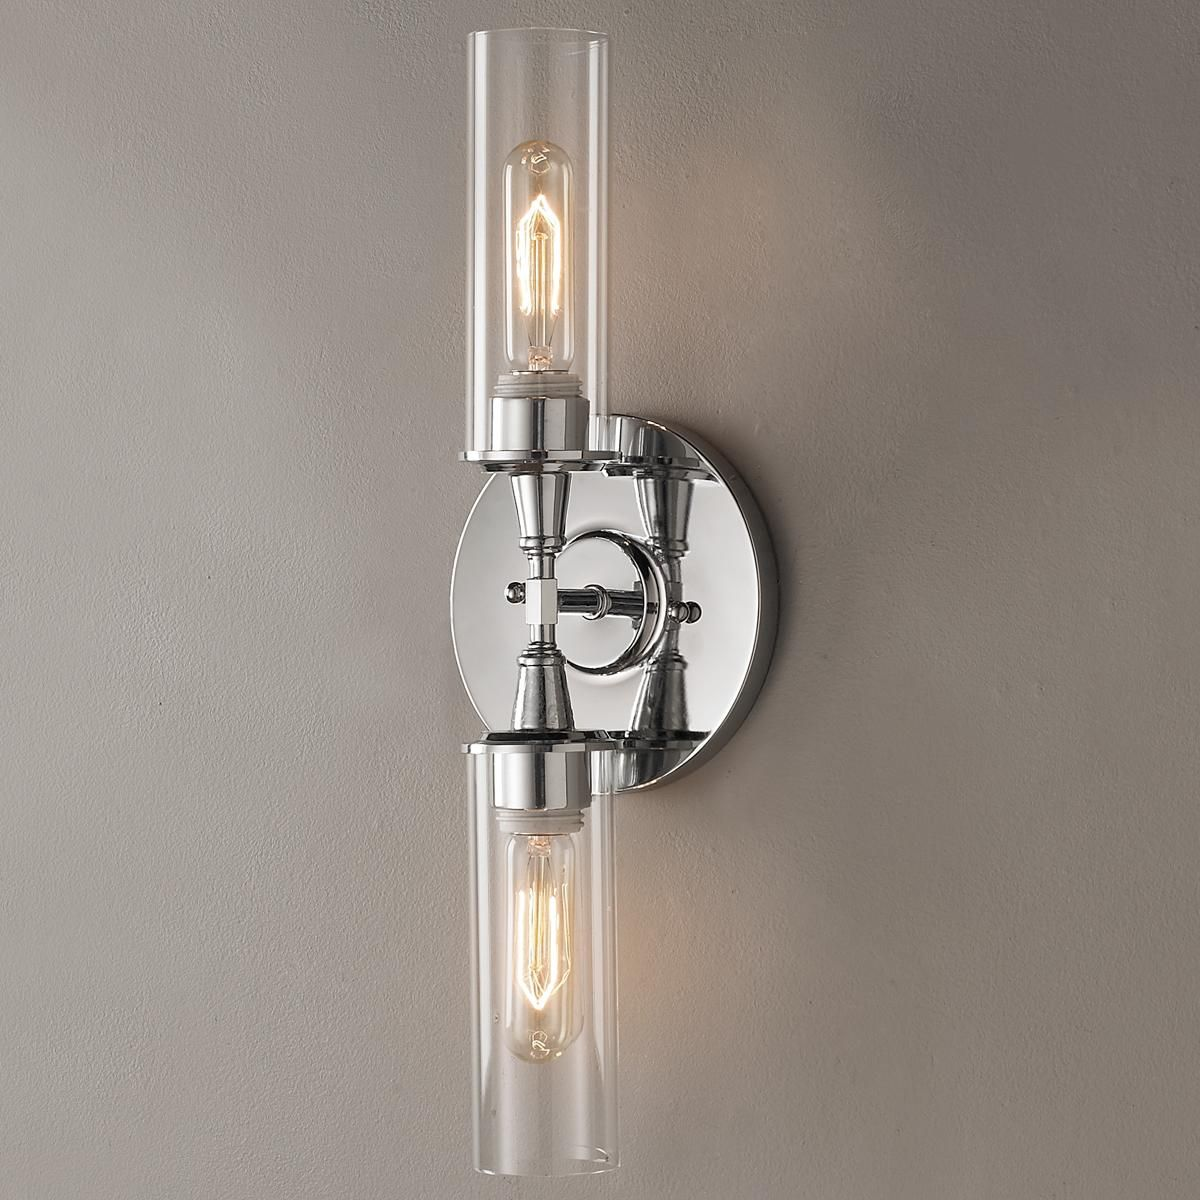 Horizontal Bathroom Sconces double bullet glass wall sconce | wall sconces, bullet and bath